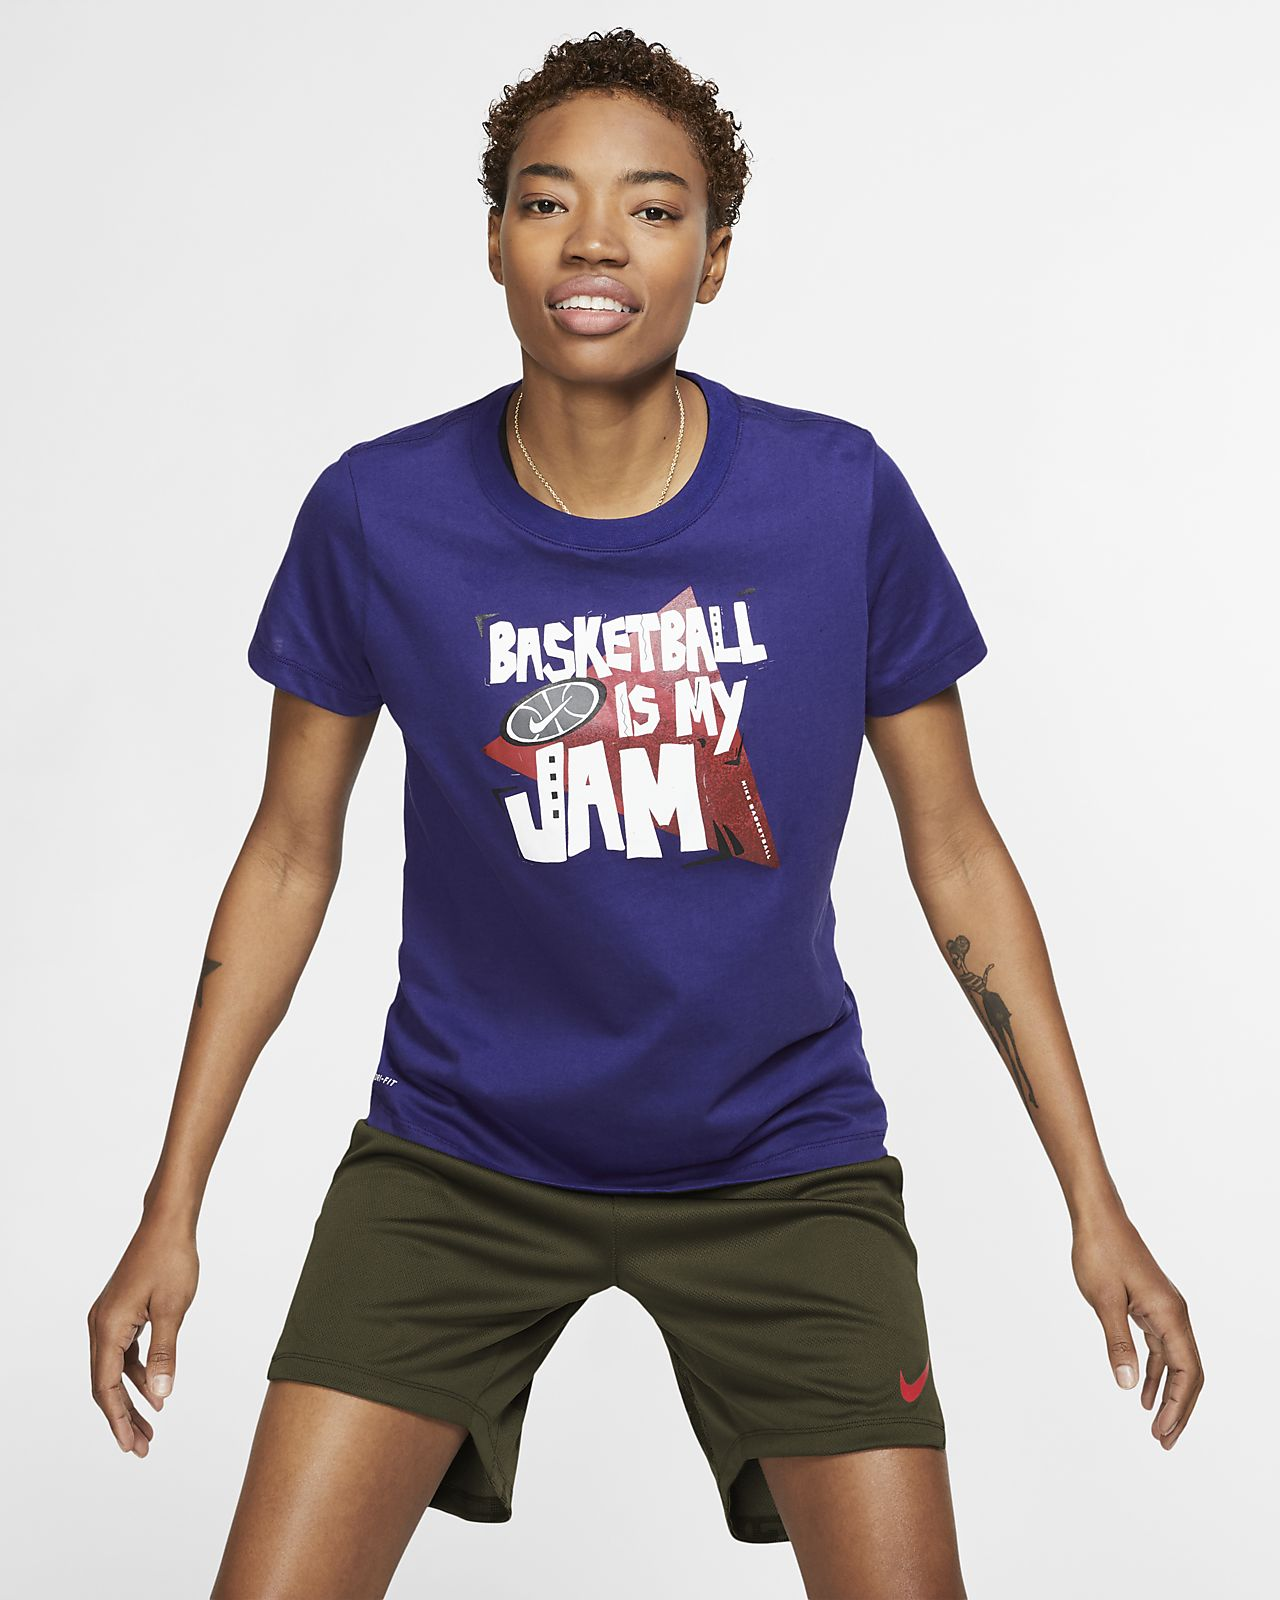 Nike Dri-FIT Basketbalshirt voor dames